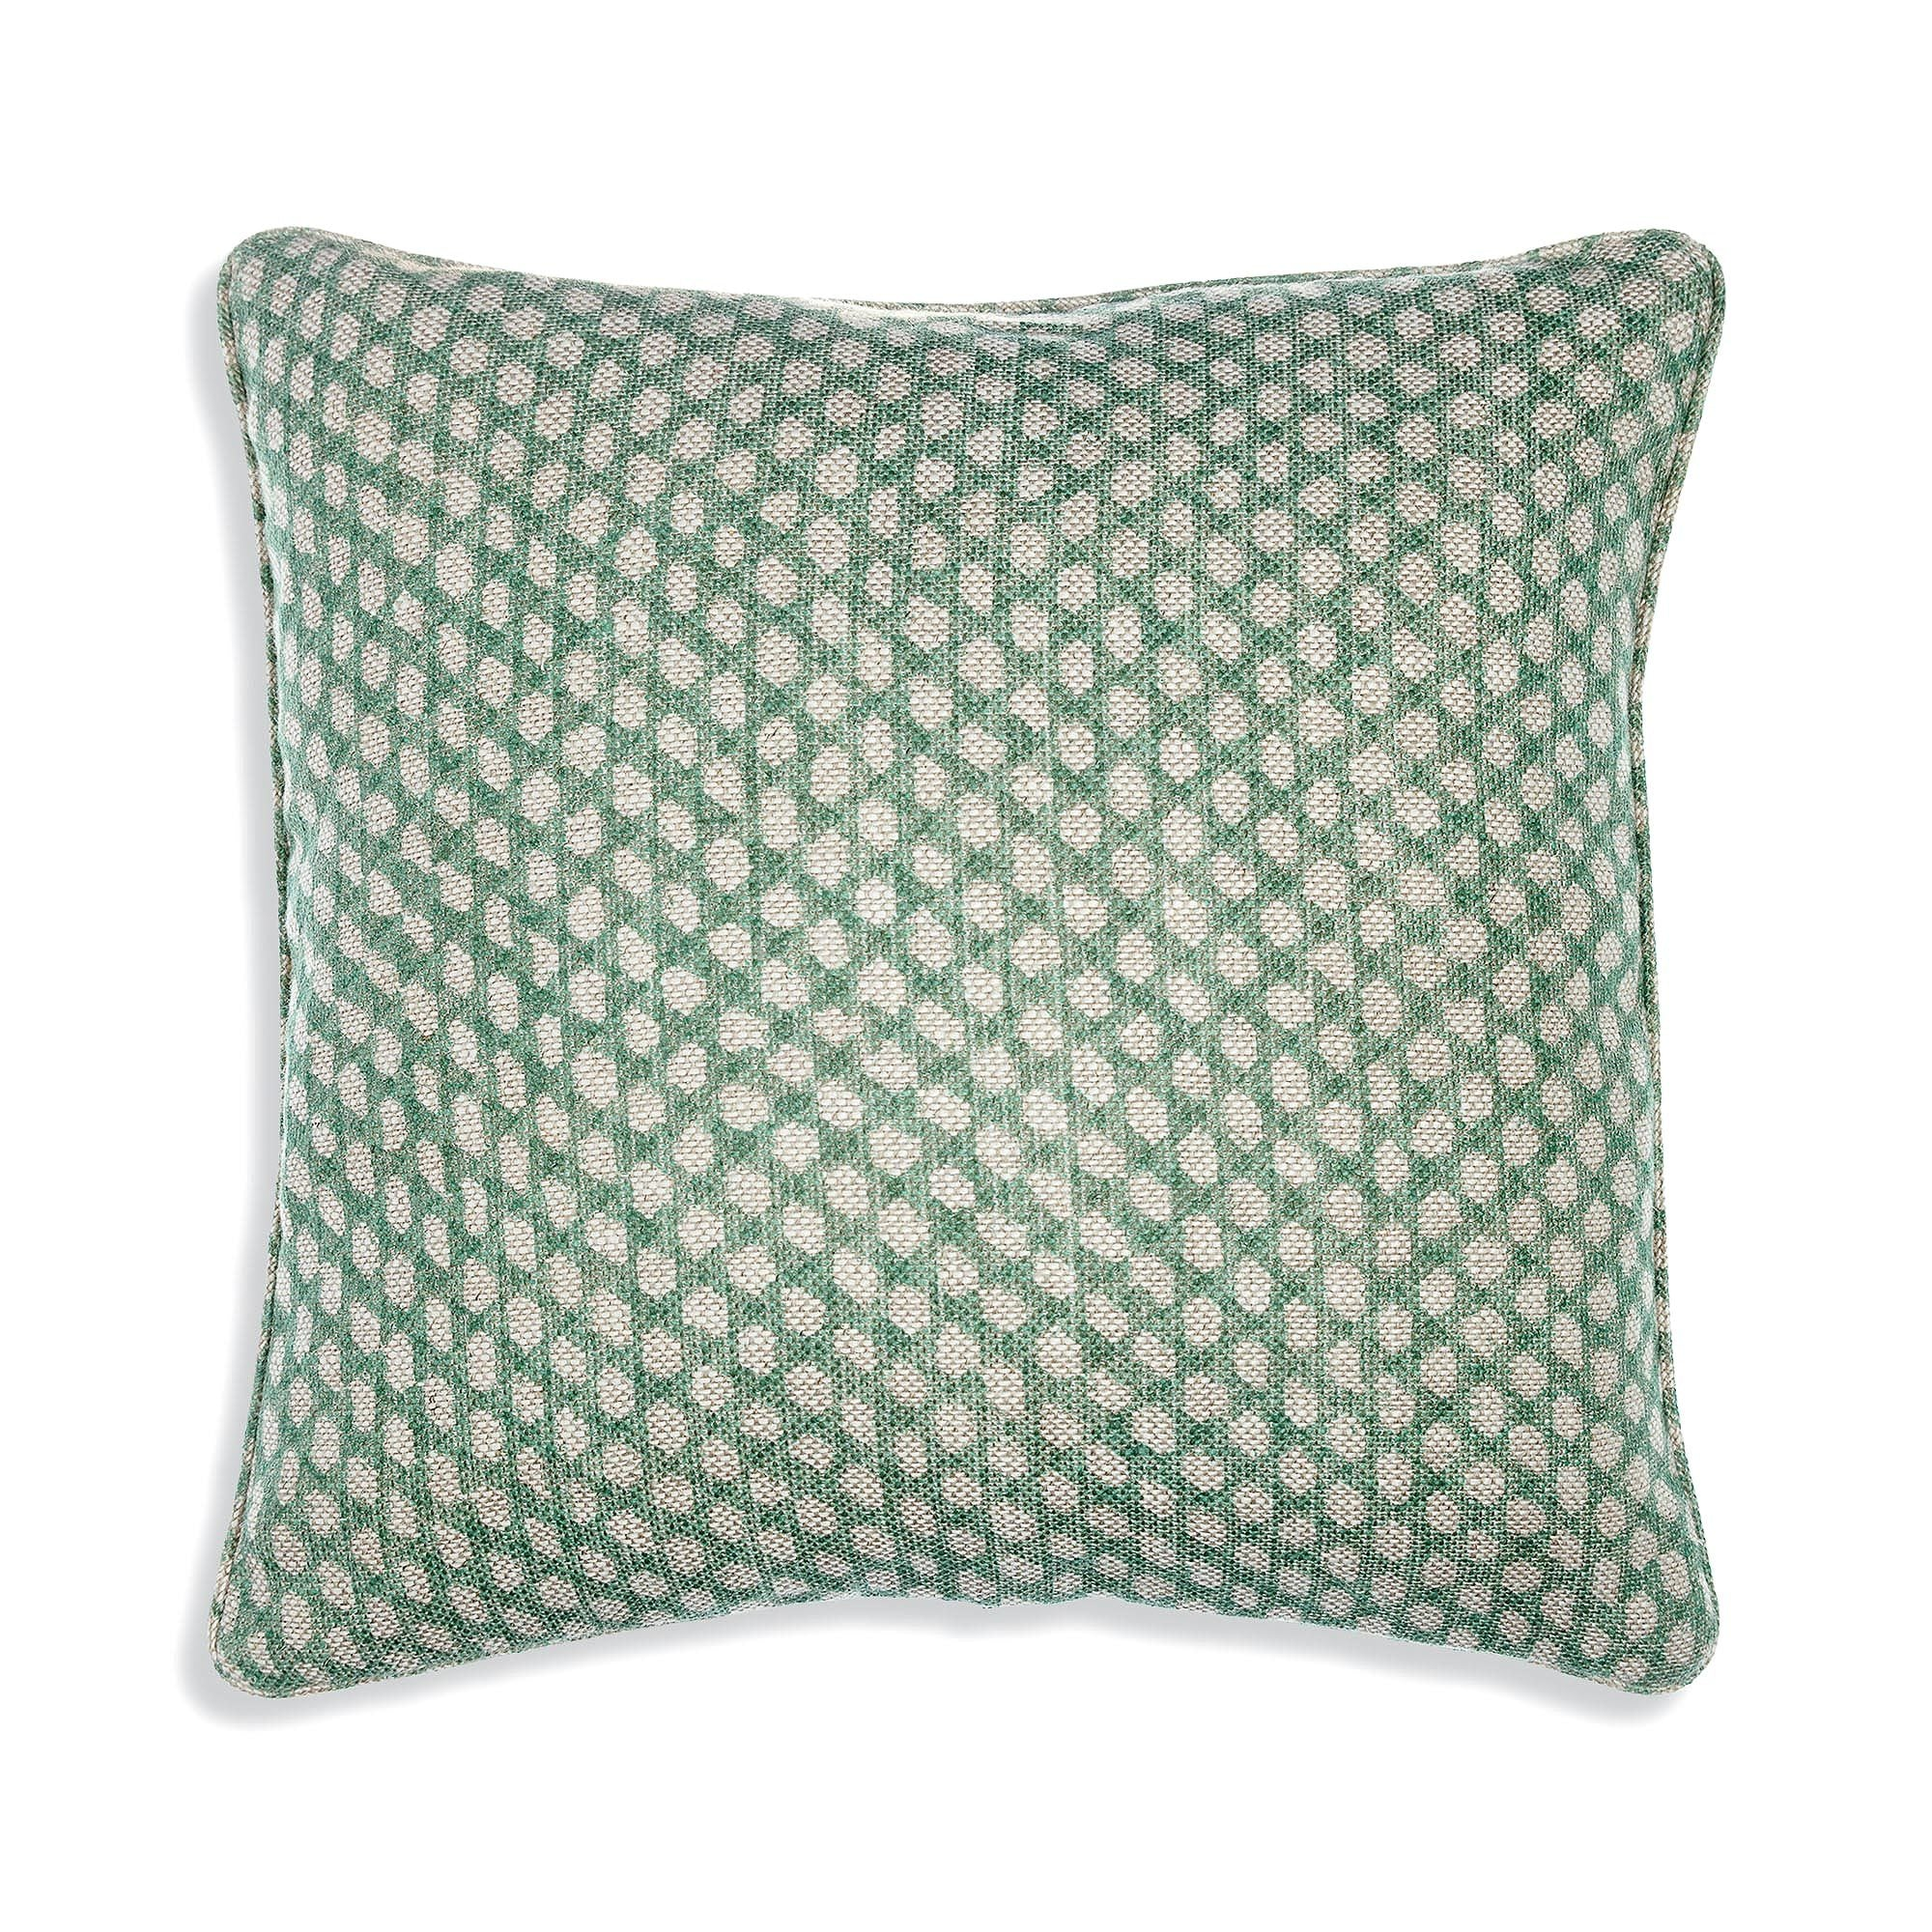 Fermoie Cushion in Green Wicker